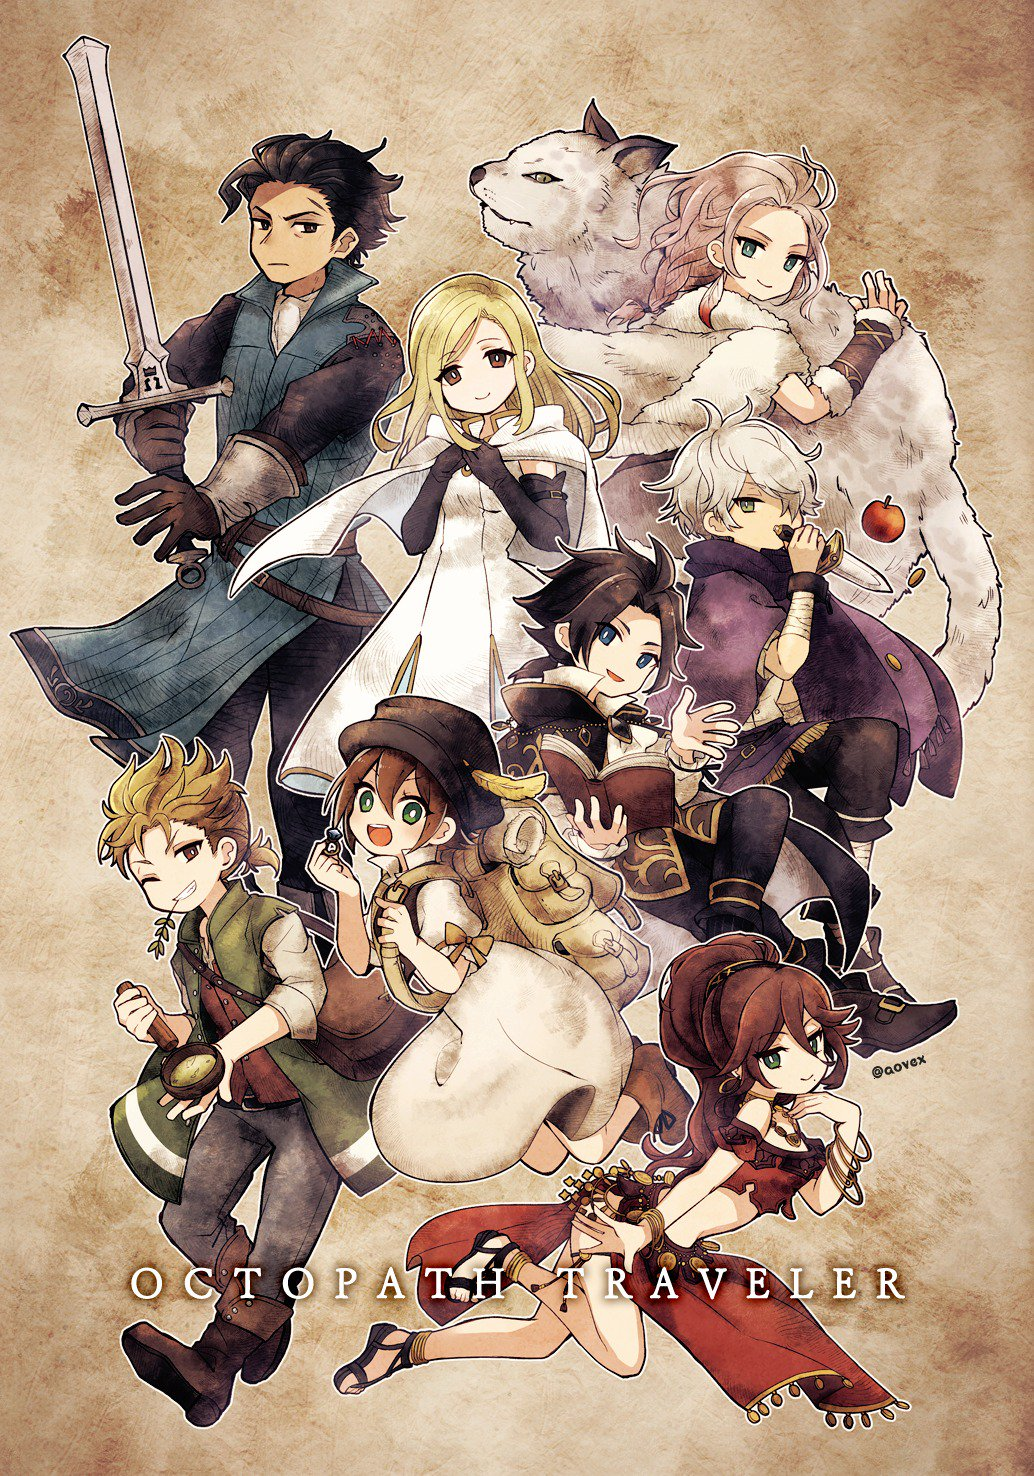 alfyn_(octopath_traveler) animal aononchi apple armor bag blonde_hair blue_eyes book bracelet braid braided_ponytail breasts brown_hair cape cloak cyrus_(octopath_traveler) dancer dress fingerless_gloves food fringe_trim fruit fur_trim gloves green_eyes h'aanit_(octopath_traveler) hair_over_one_eye hat highres jewelry linde_(octopath_traveler) long_hair looking_at_viewer multiple_boys multiple_girls necklace octopath_traveler olberic_eisenberg open_mouth ophilia_(octopath_traveler) ponytail primrose_azelhart scar scarf short_hair simple_background smile snow_leopard sword therion_(octopath_traveler) tressa_(octopath_traveler) weapon white_hair yellow_eyes